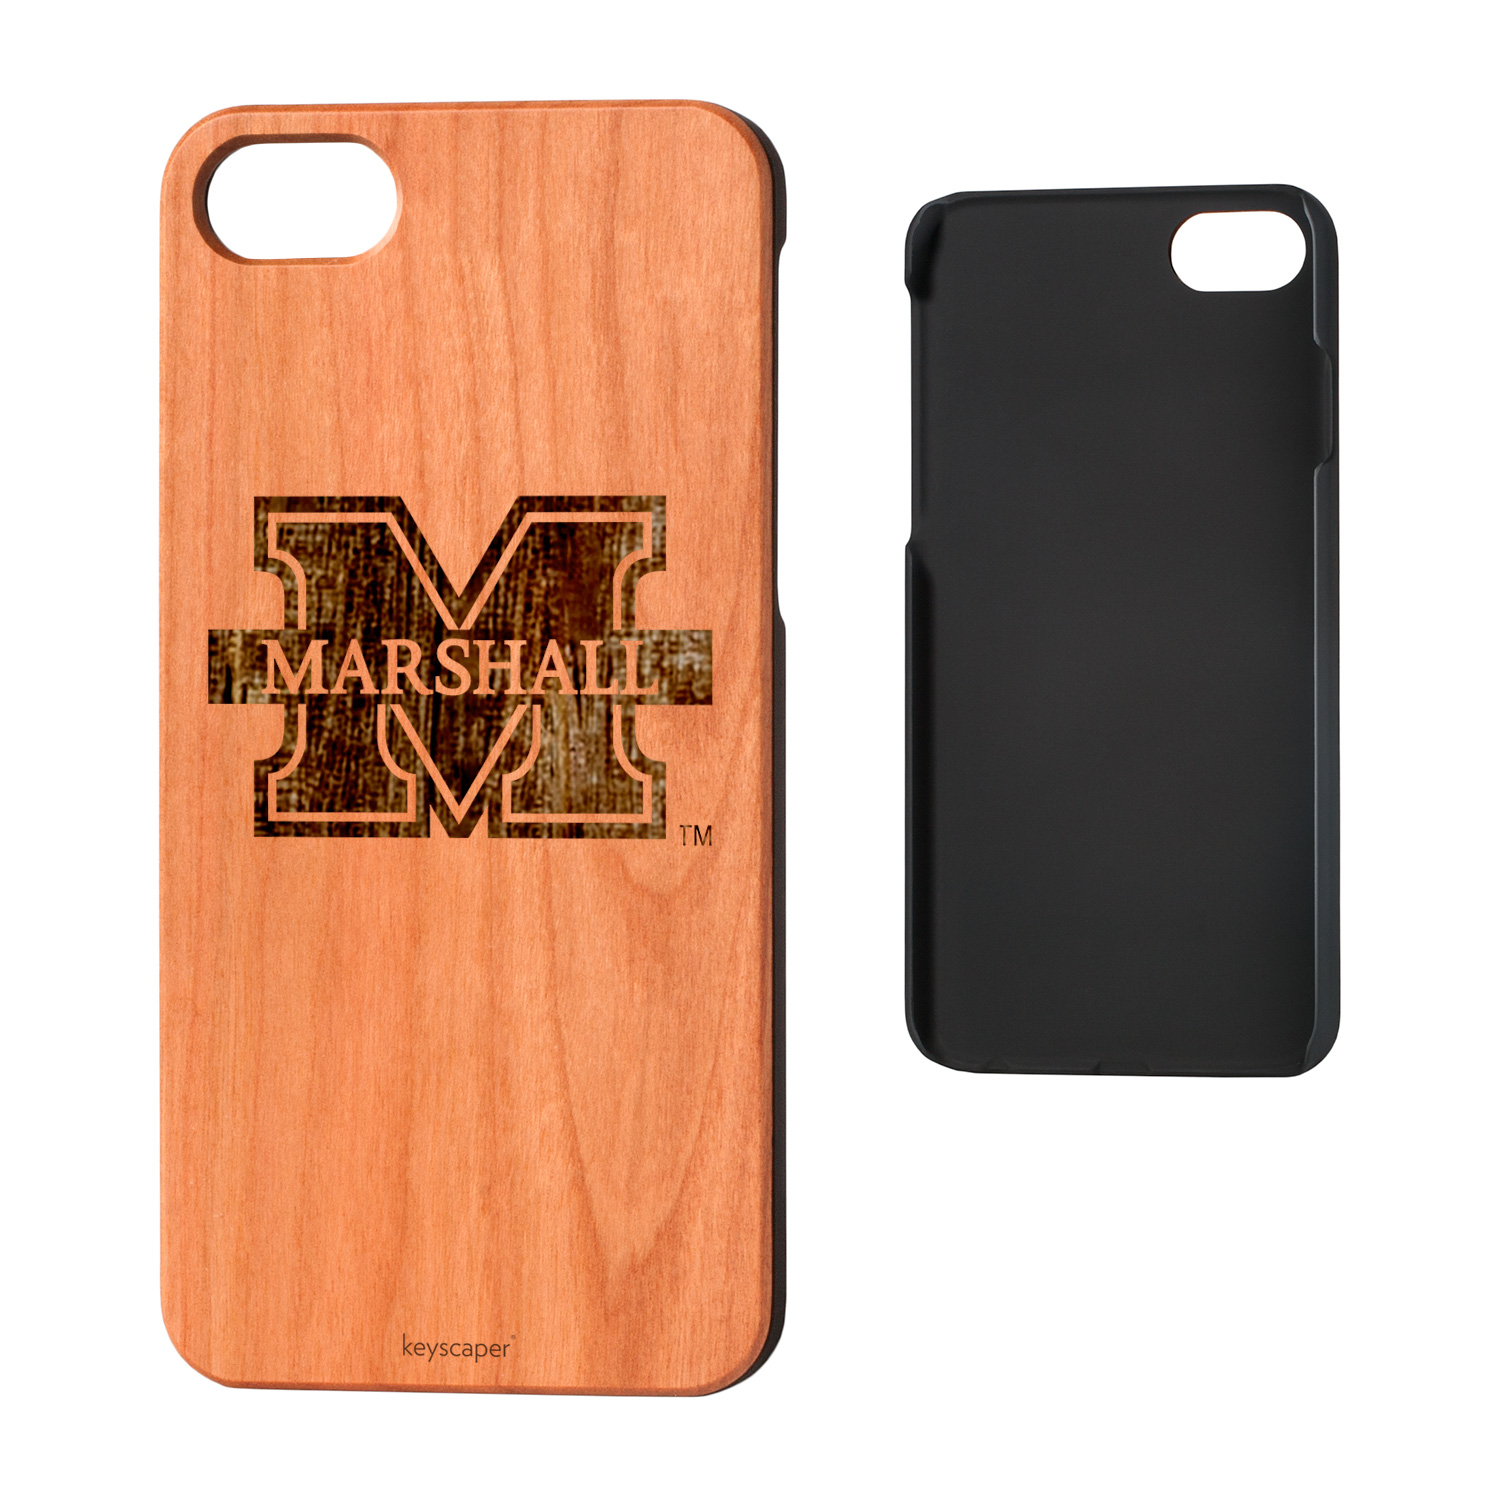 Marshall University Cherry Wood iPhone 7 / iPhone 8 Case NCAA